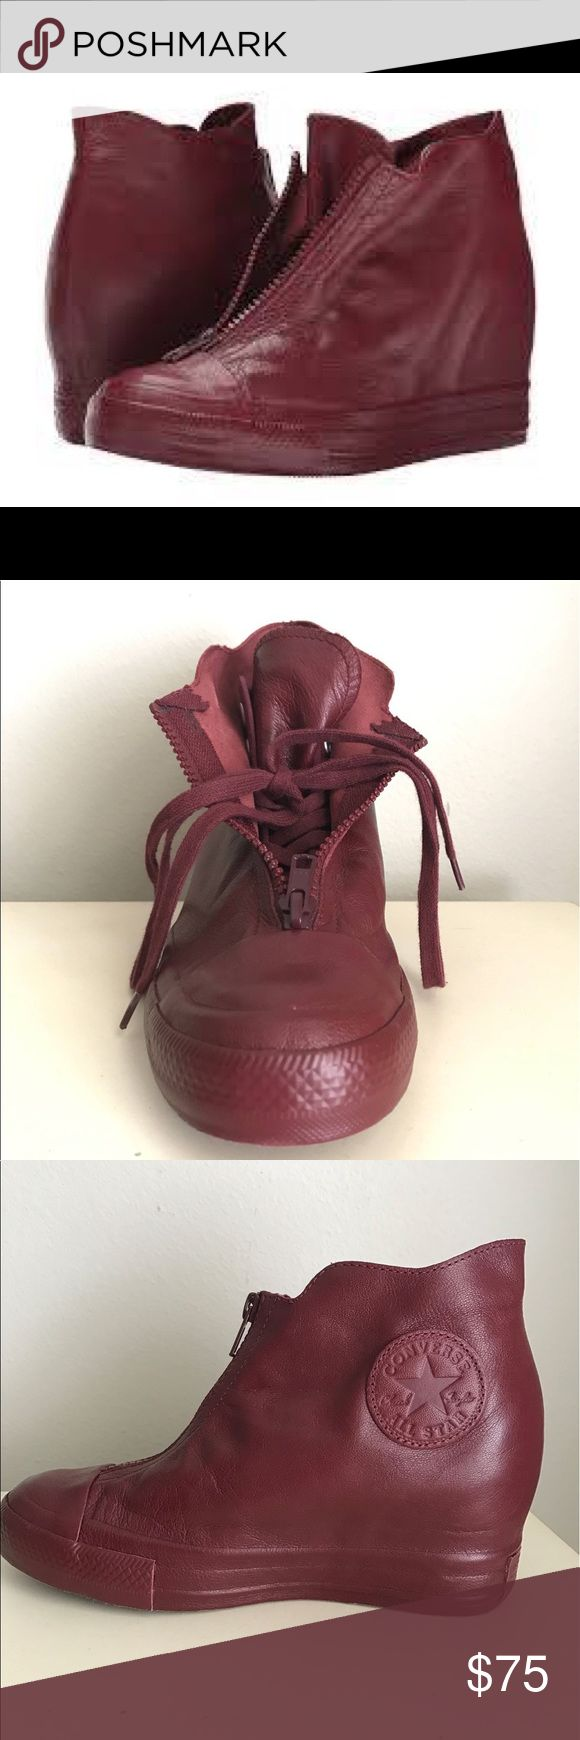 NEW Leather Converse Bordeaux CT All Stars Wedge NEW Leather Converse Bordeaux CT All Stars Mid Shroud Wedge Sneakers. Currently on Zappos for $120 Sz 7 Converse Shoes